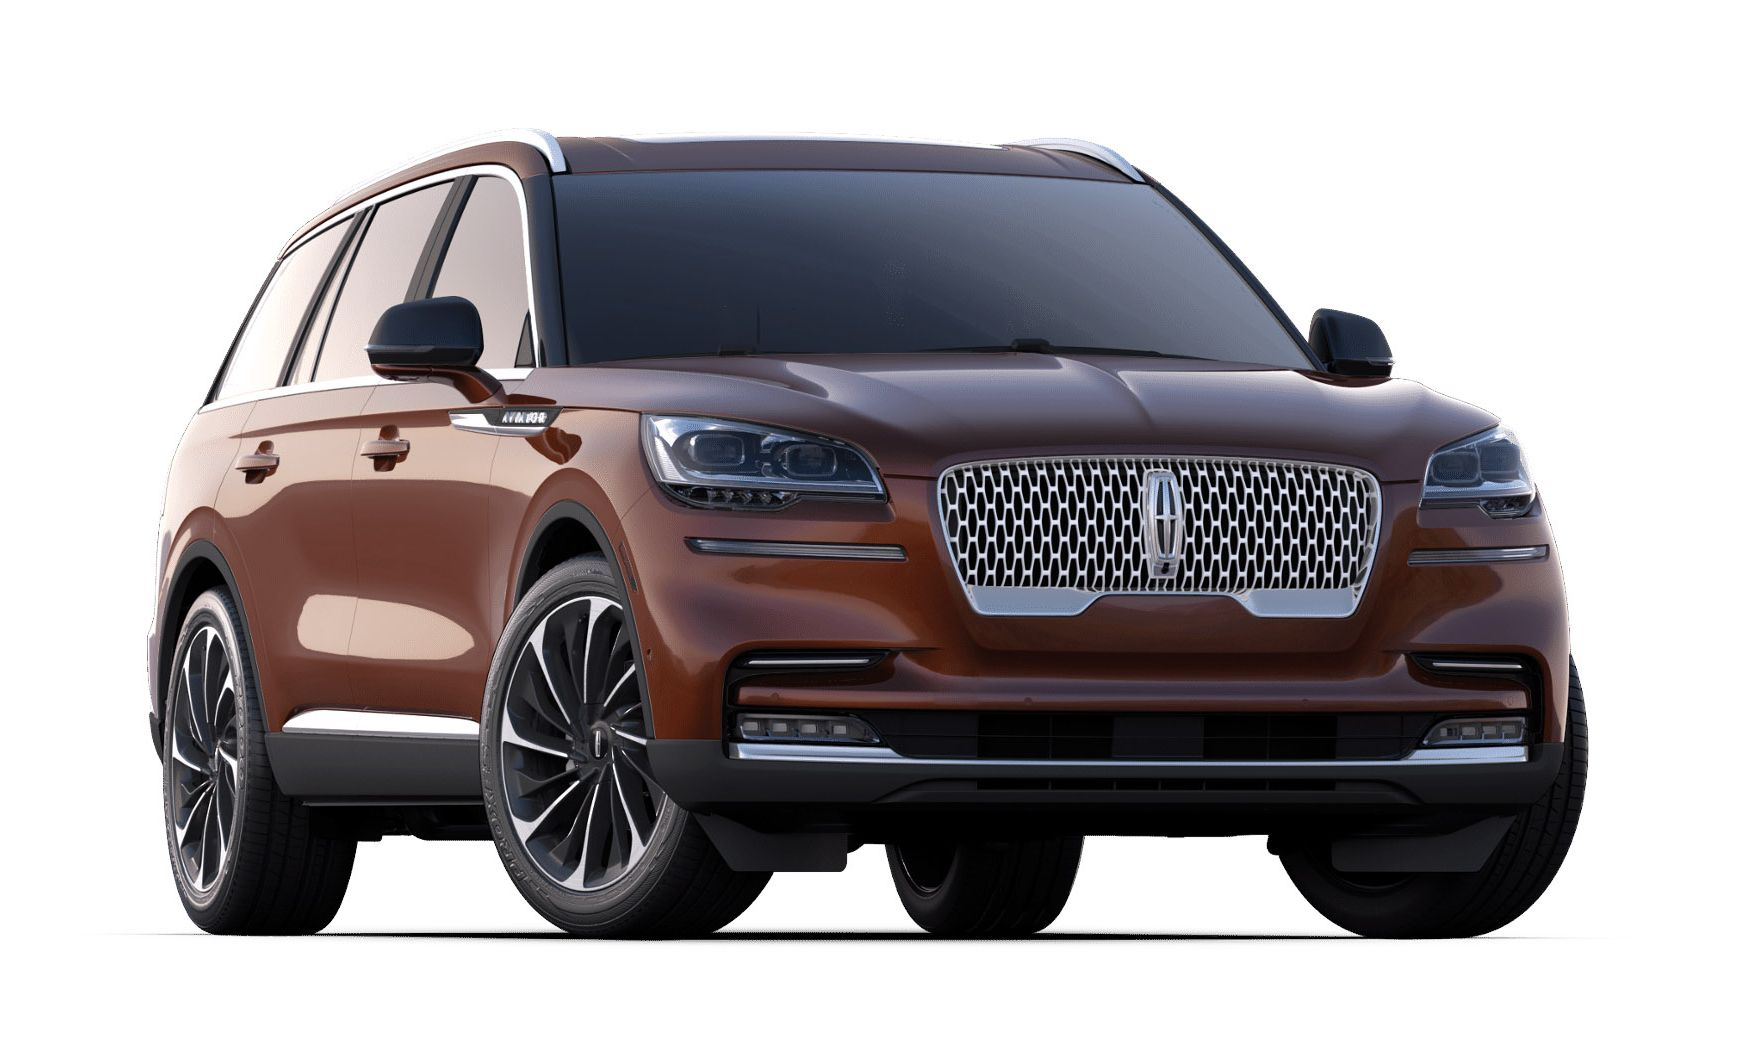 2020 Lincoln Aviator Suv Pricing Trim Levels Equipment